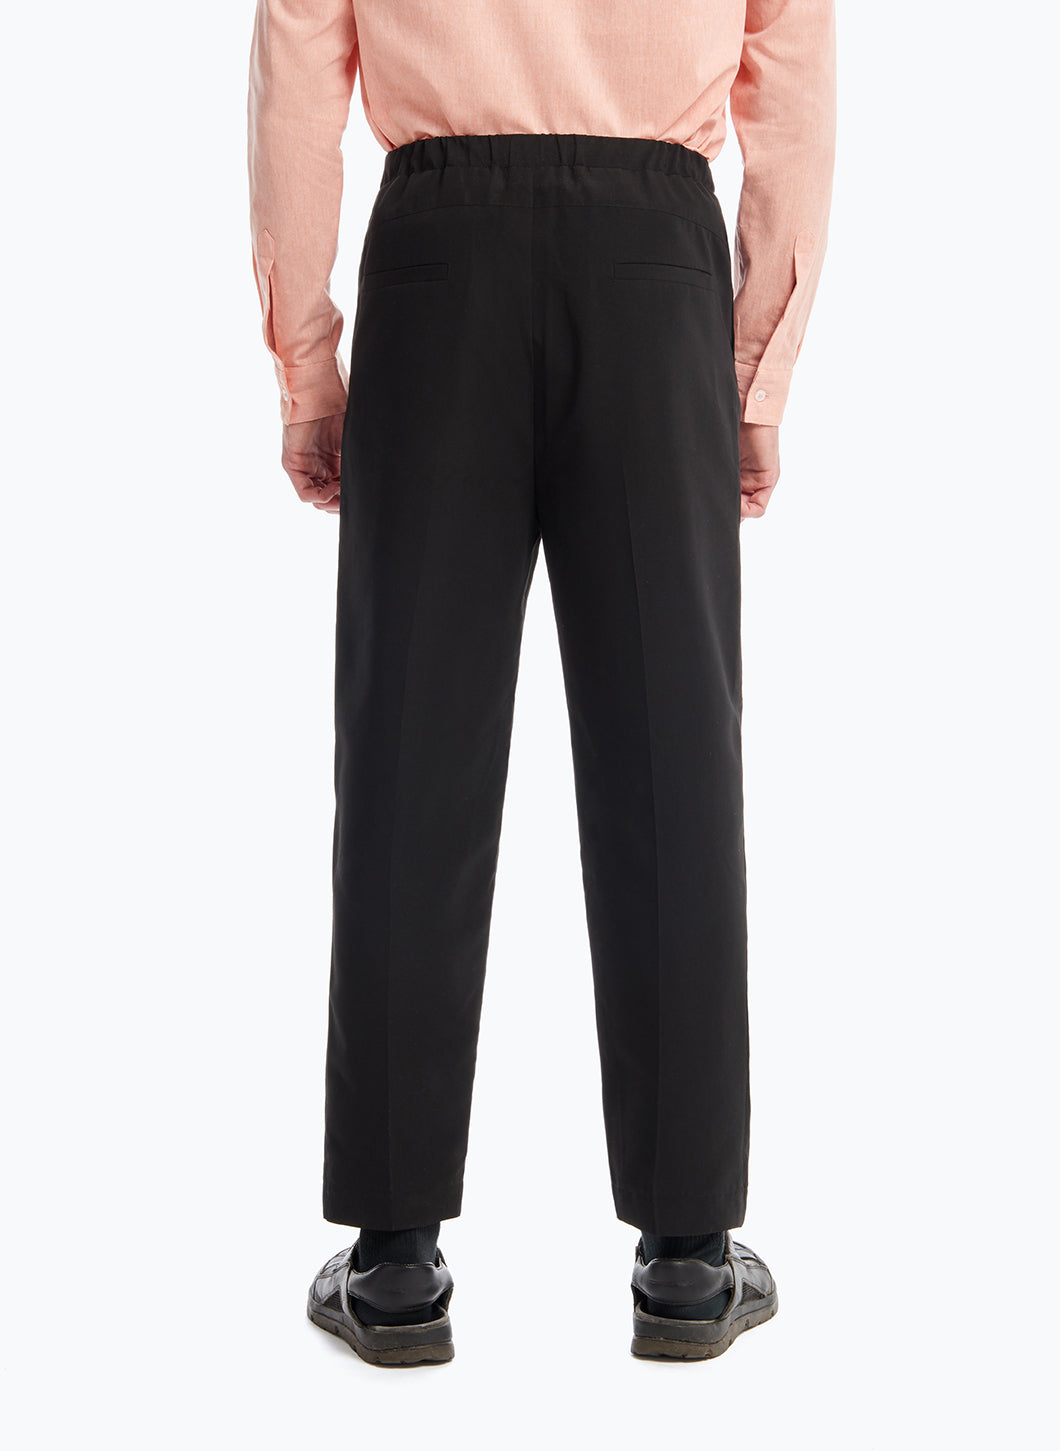 Elastic Waist Pants with Deep Pleats in Black Microfiber